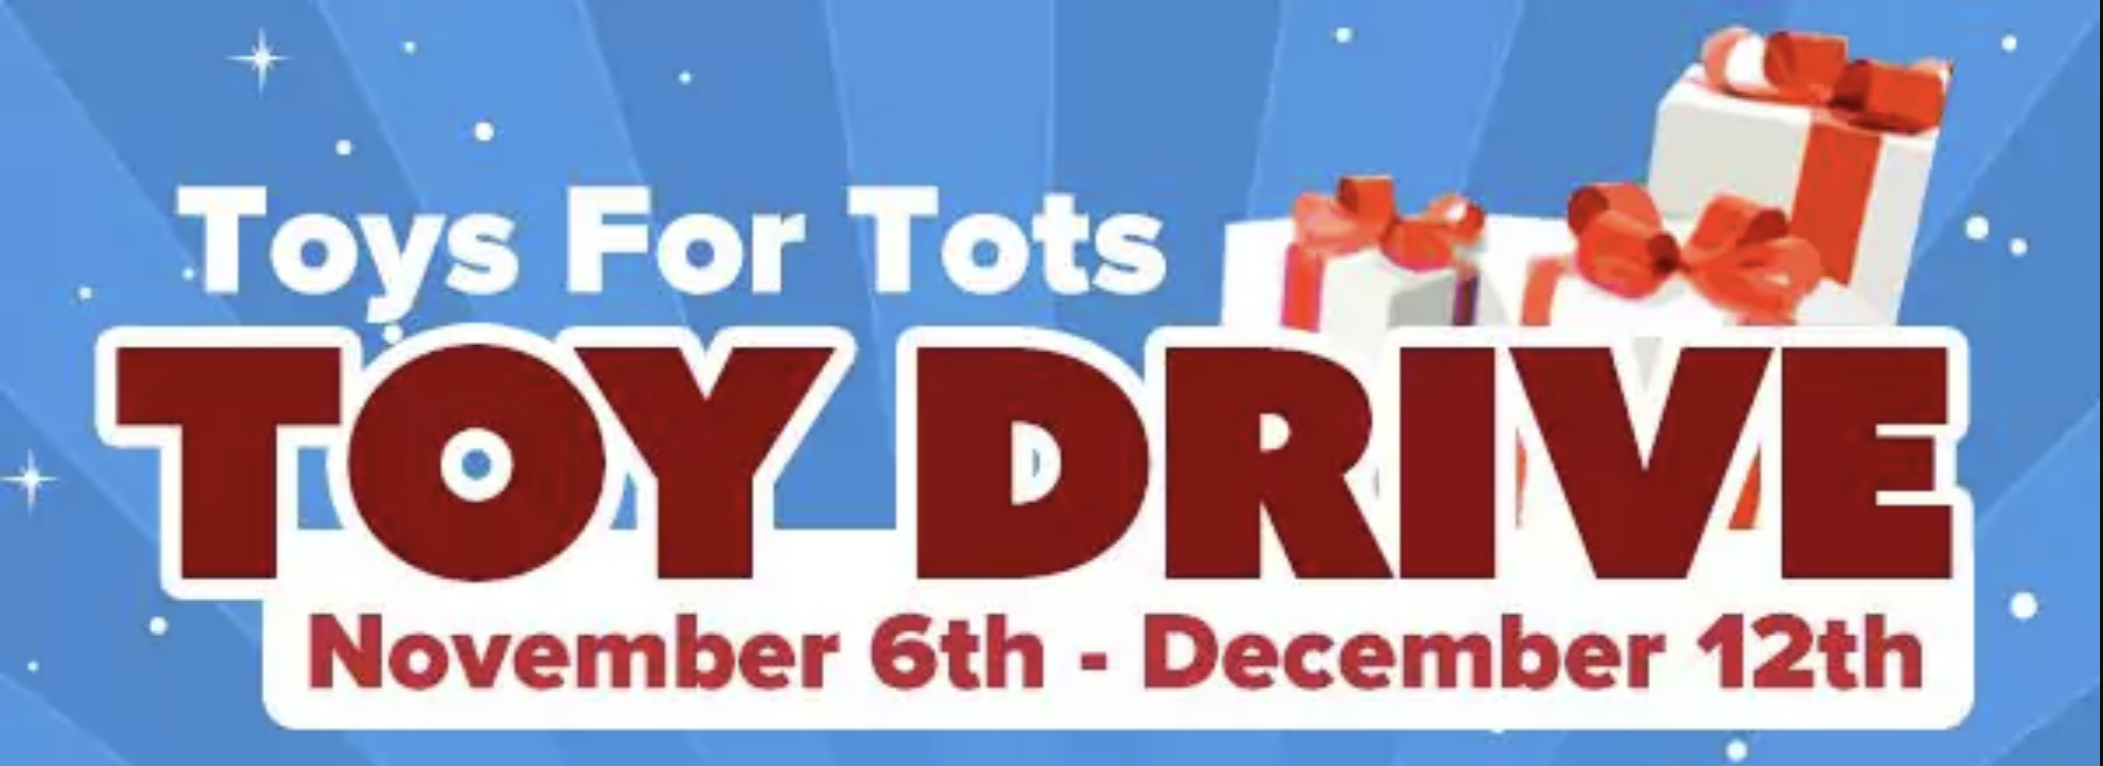 Toys For Tots Sign Up Application Form : Toys for tots ocean honda of weymouth